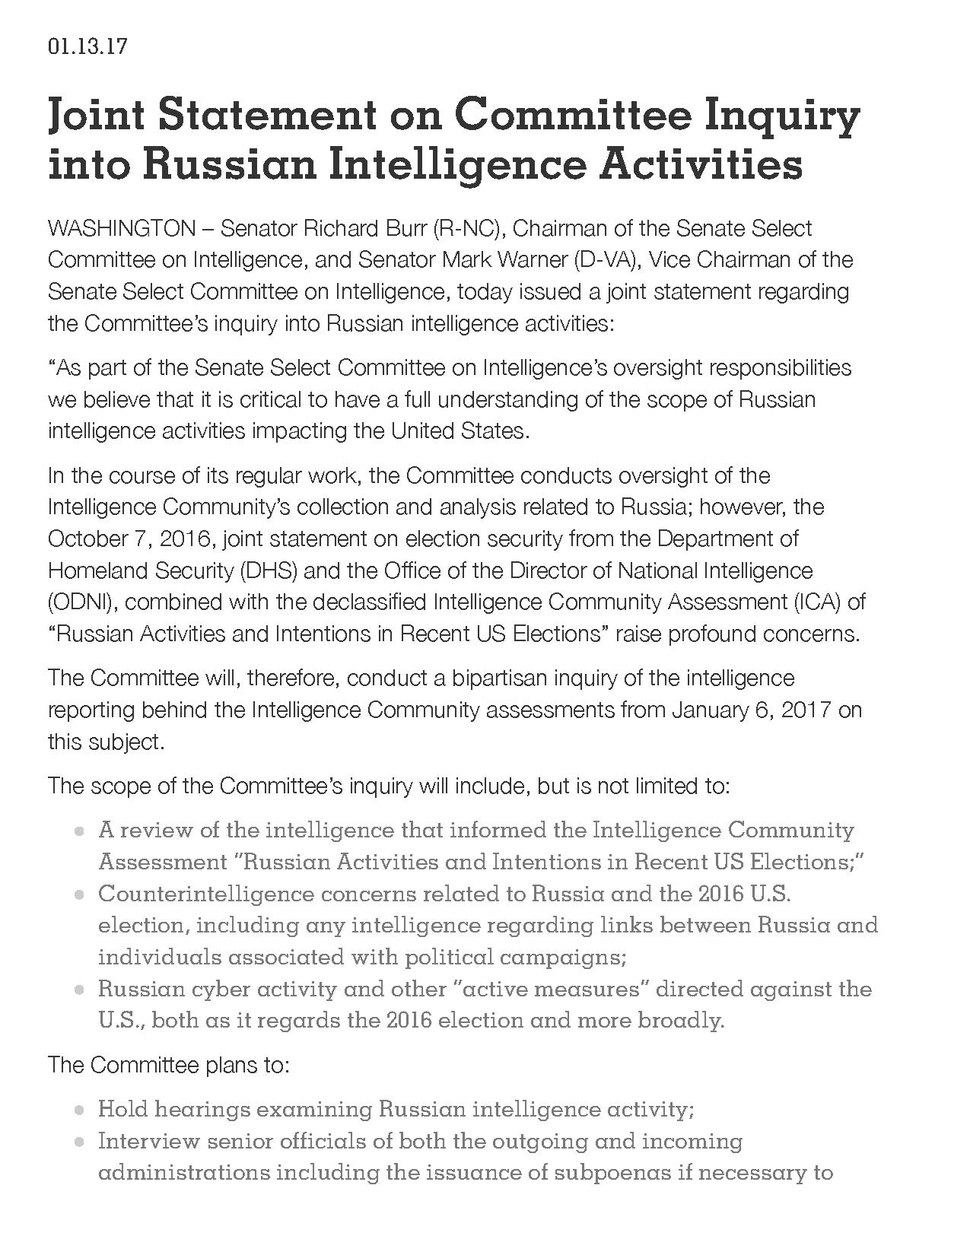 Joint Statement on Committee Inquiry into Russian Intelligence Activities.pdf